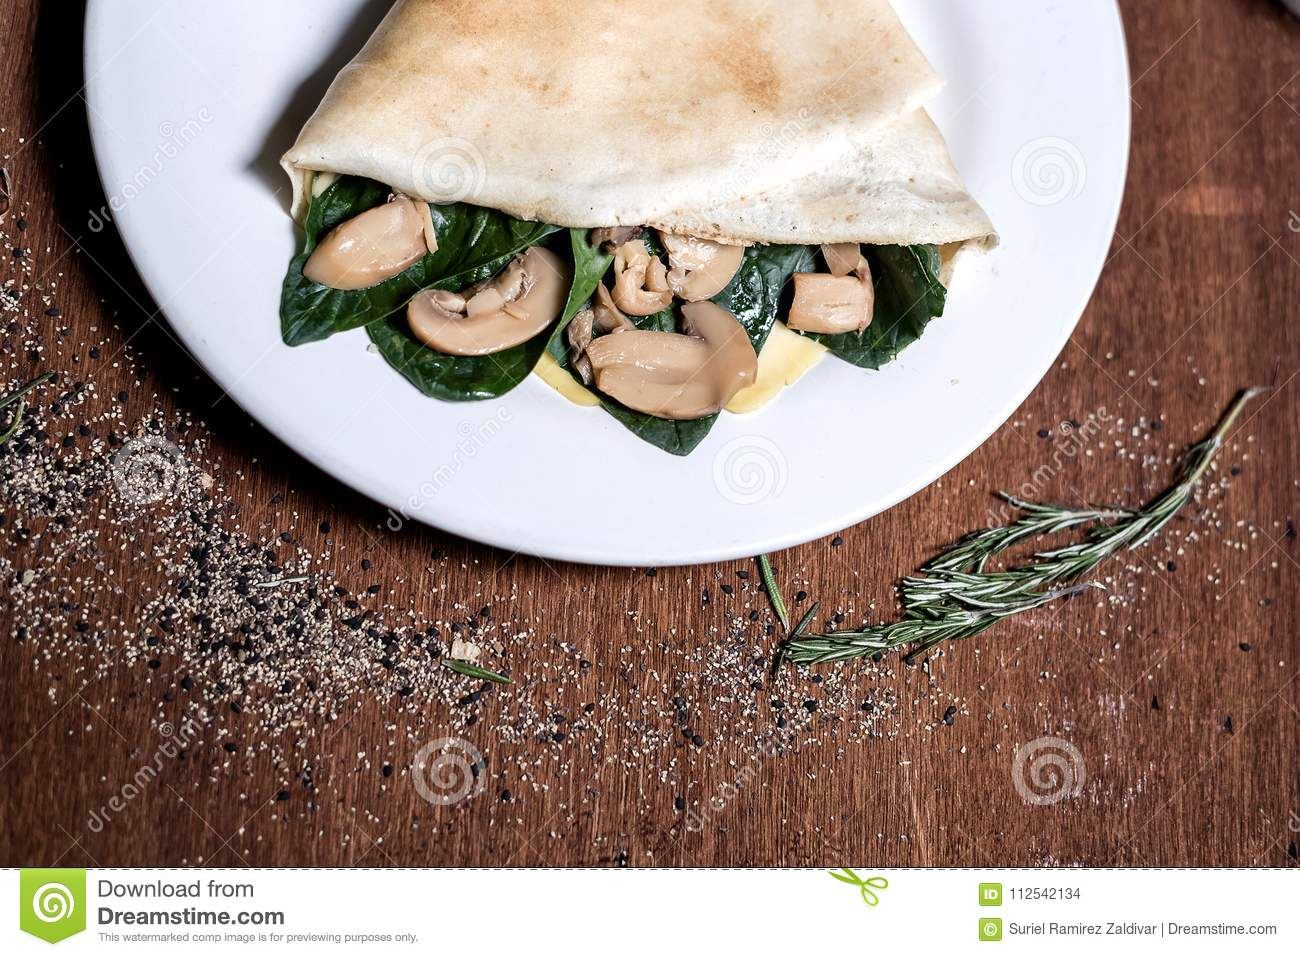 Spinach and mushrooms crepe